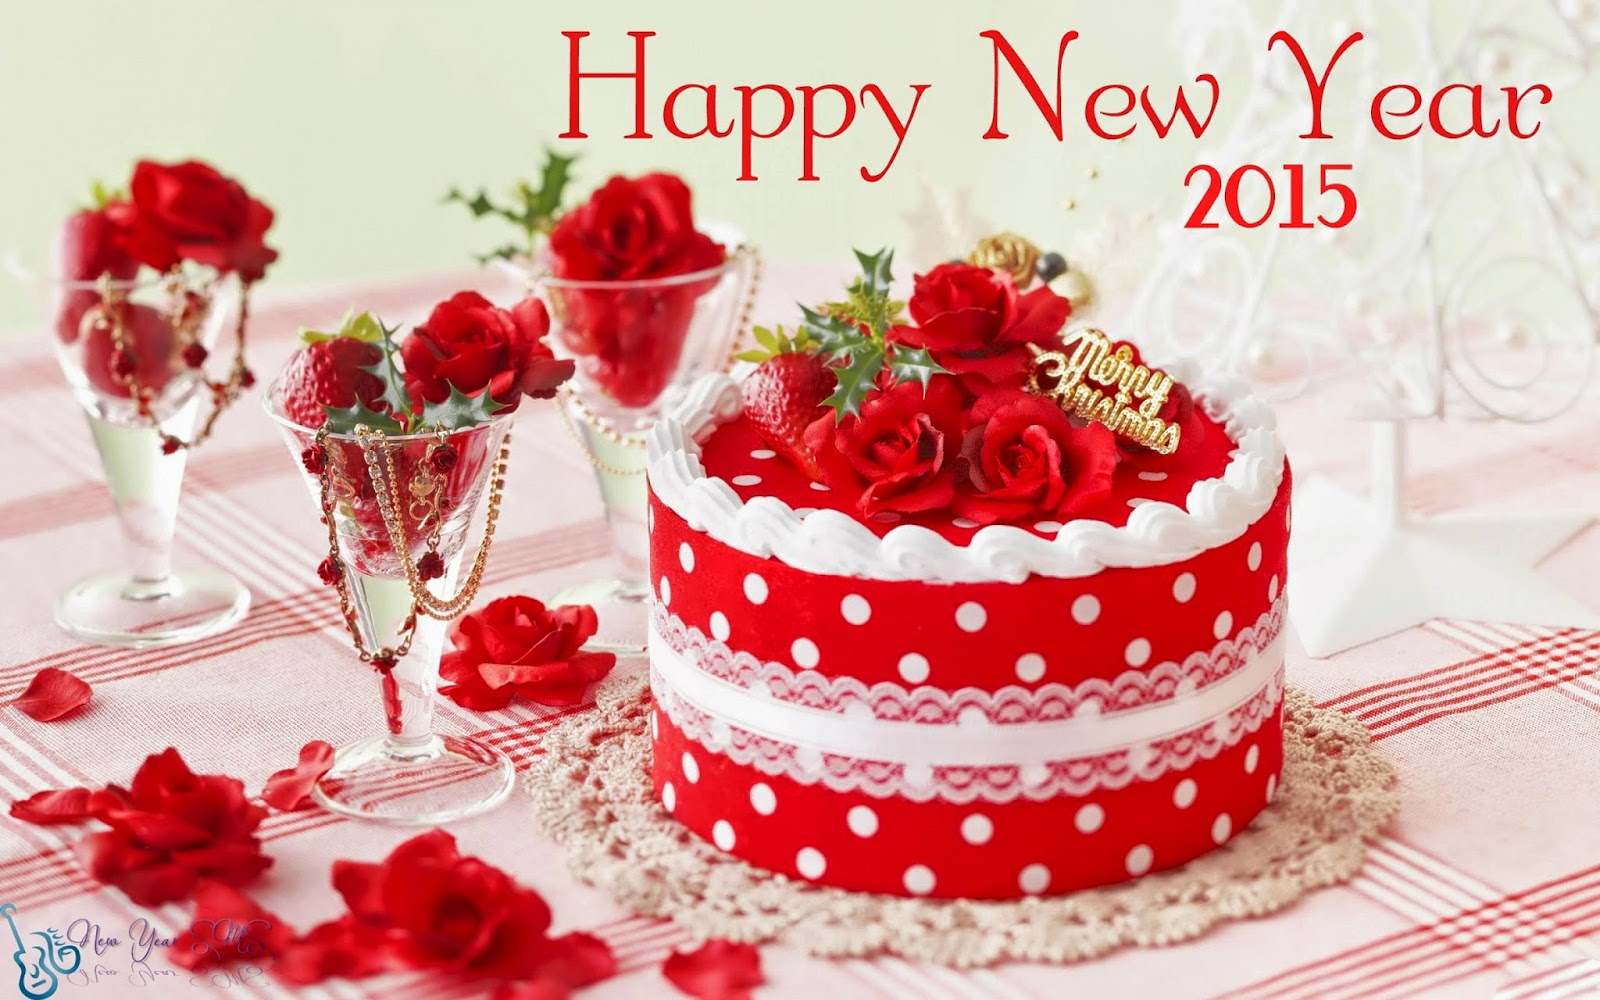 2015 Happy New Year Images Download HD Background Wallpapers 1600x1000